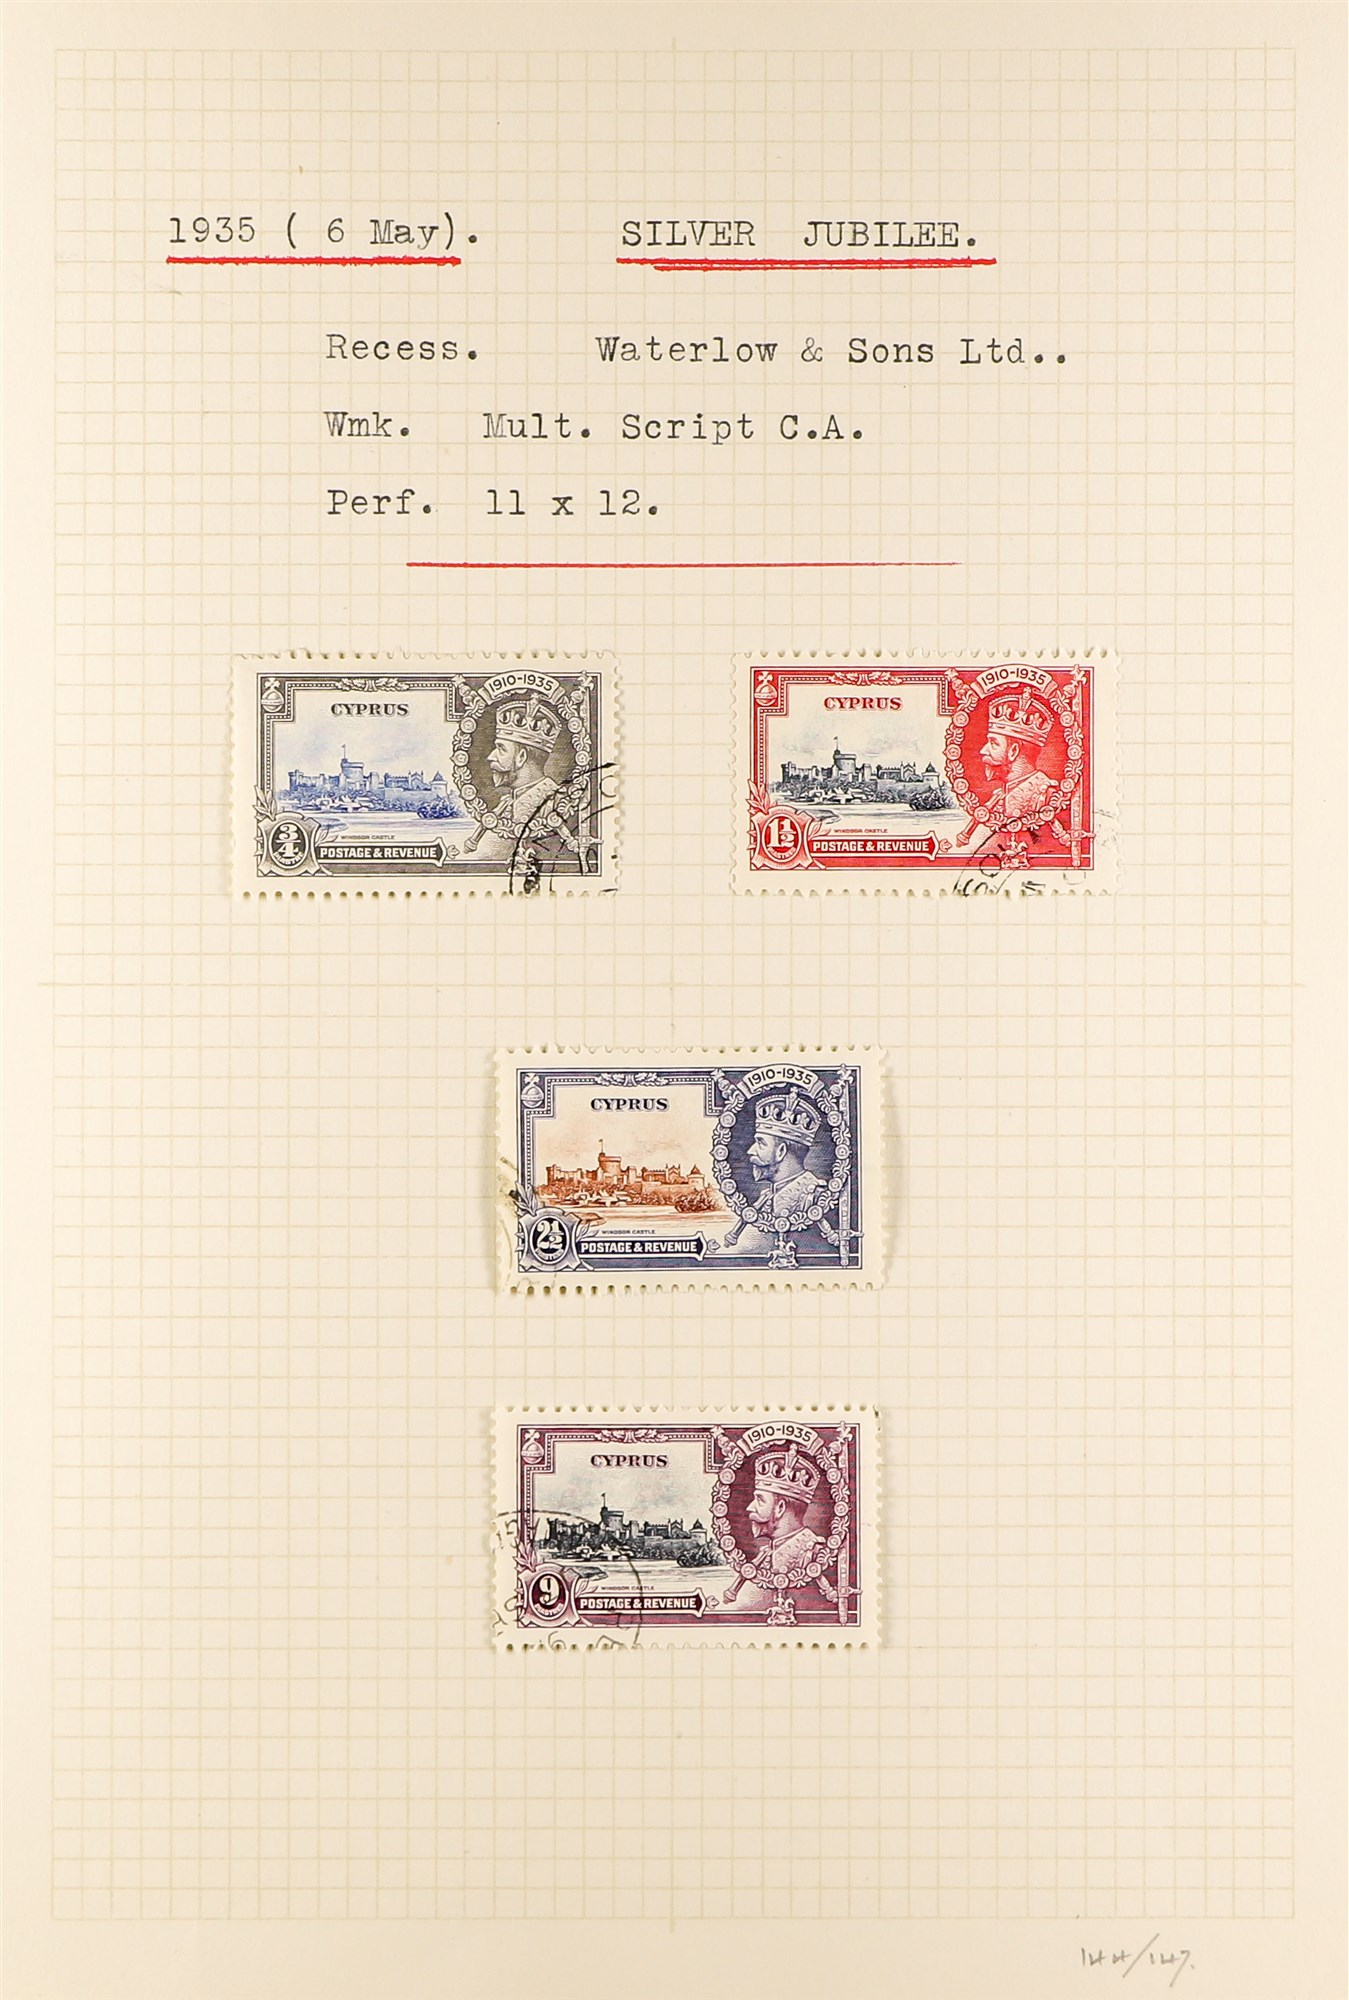 CYPRUS 1880-1935 old used collection incl. 1880 GB overprints including 2½d & ½d plate 15 used, - Image 6 of 7